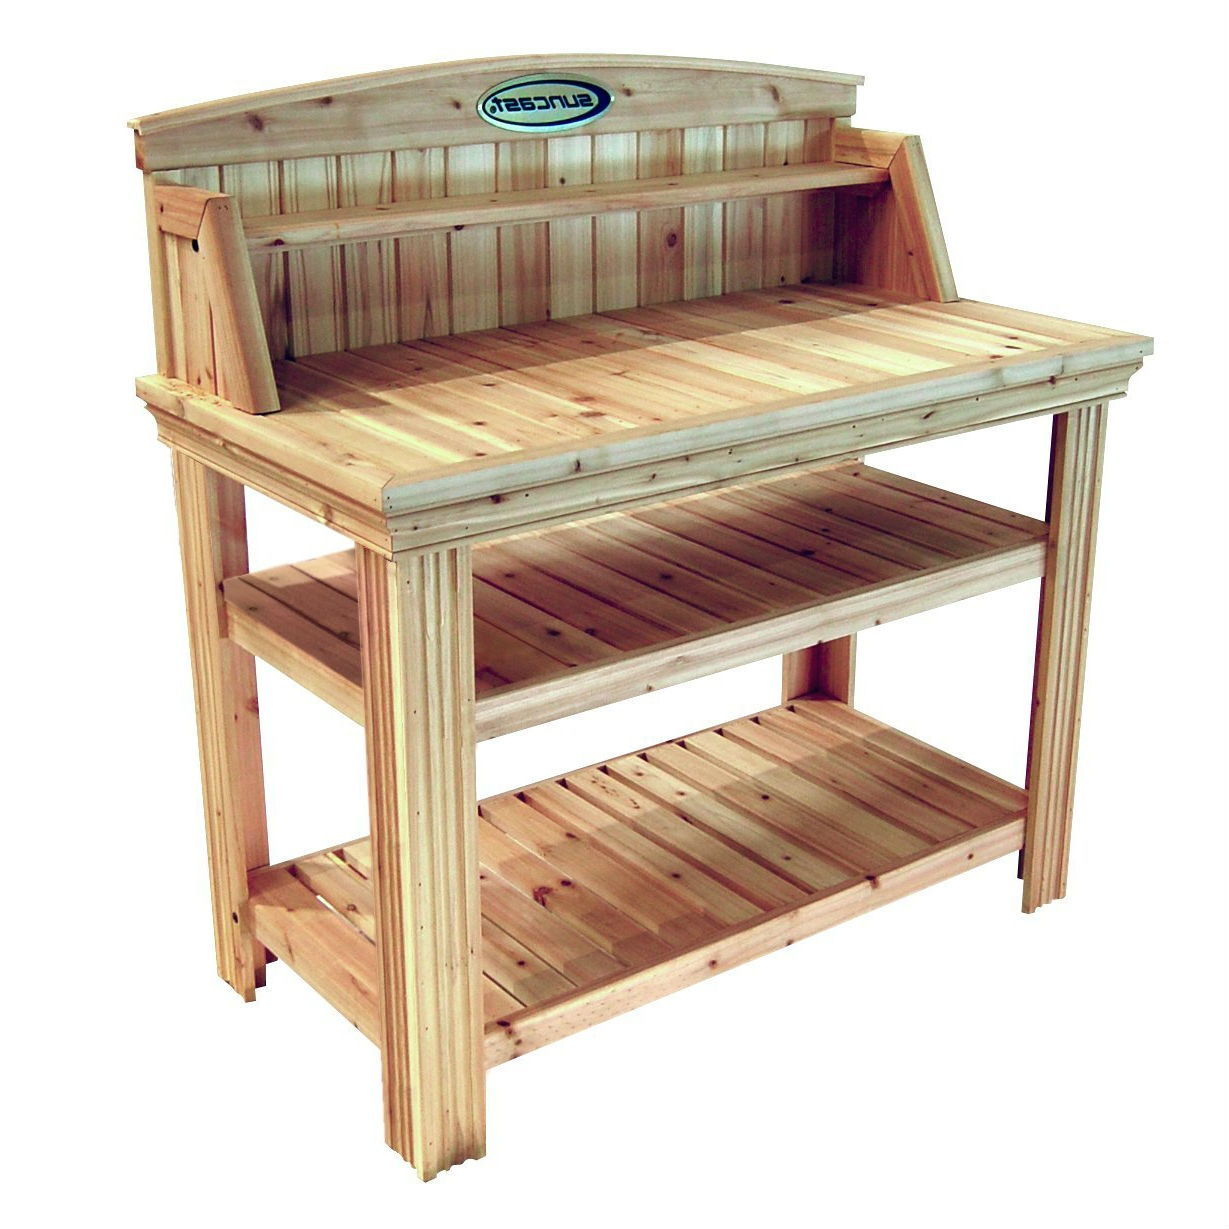 Excellent Natural Cedar Wood Potting Bench Garden Work Table With Shelves Download Free Architecture Designs Scobabritishbridgeorg